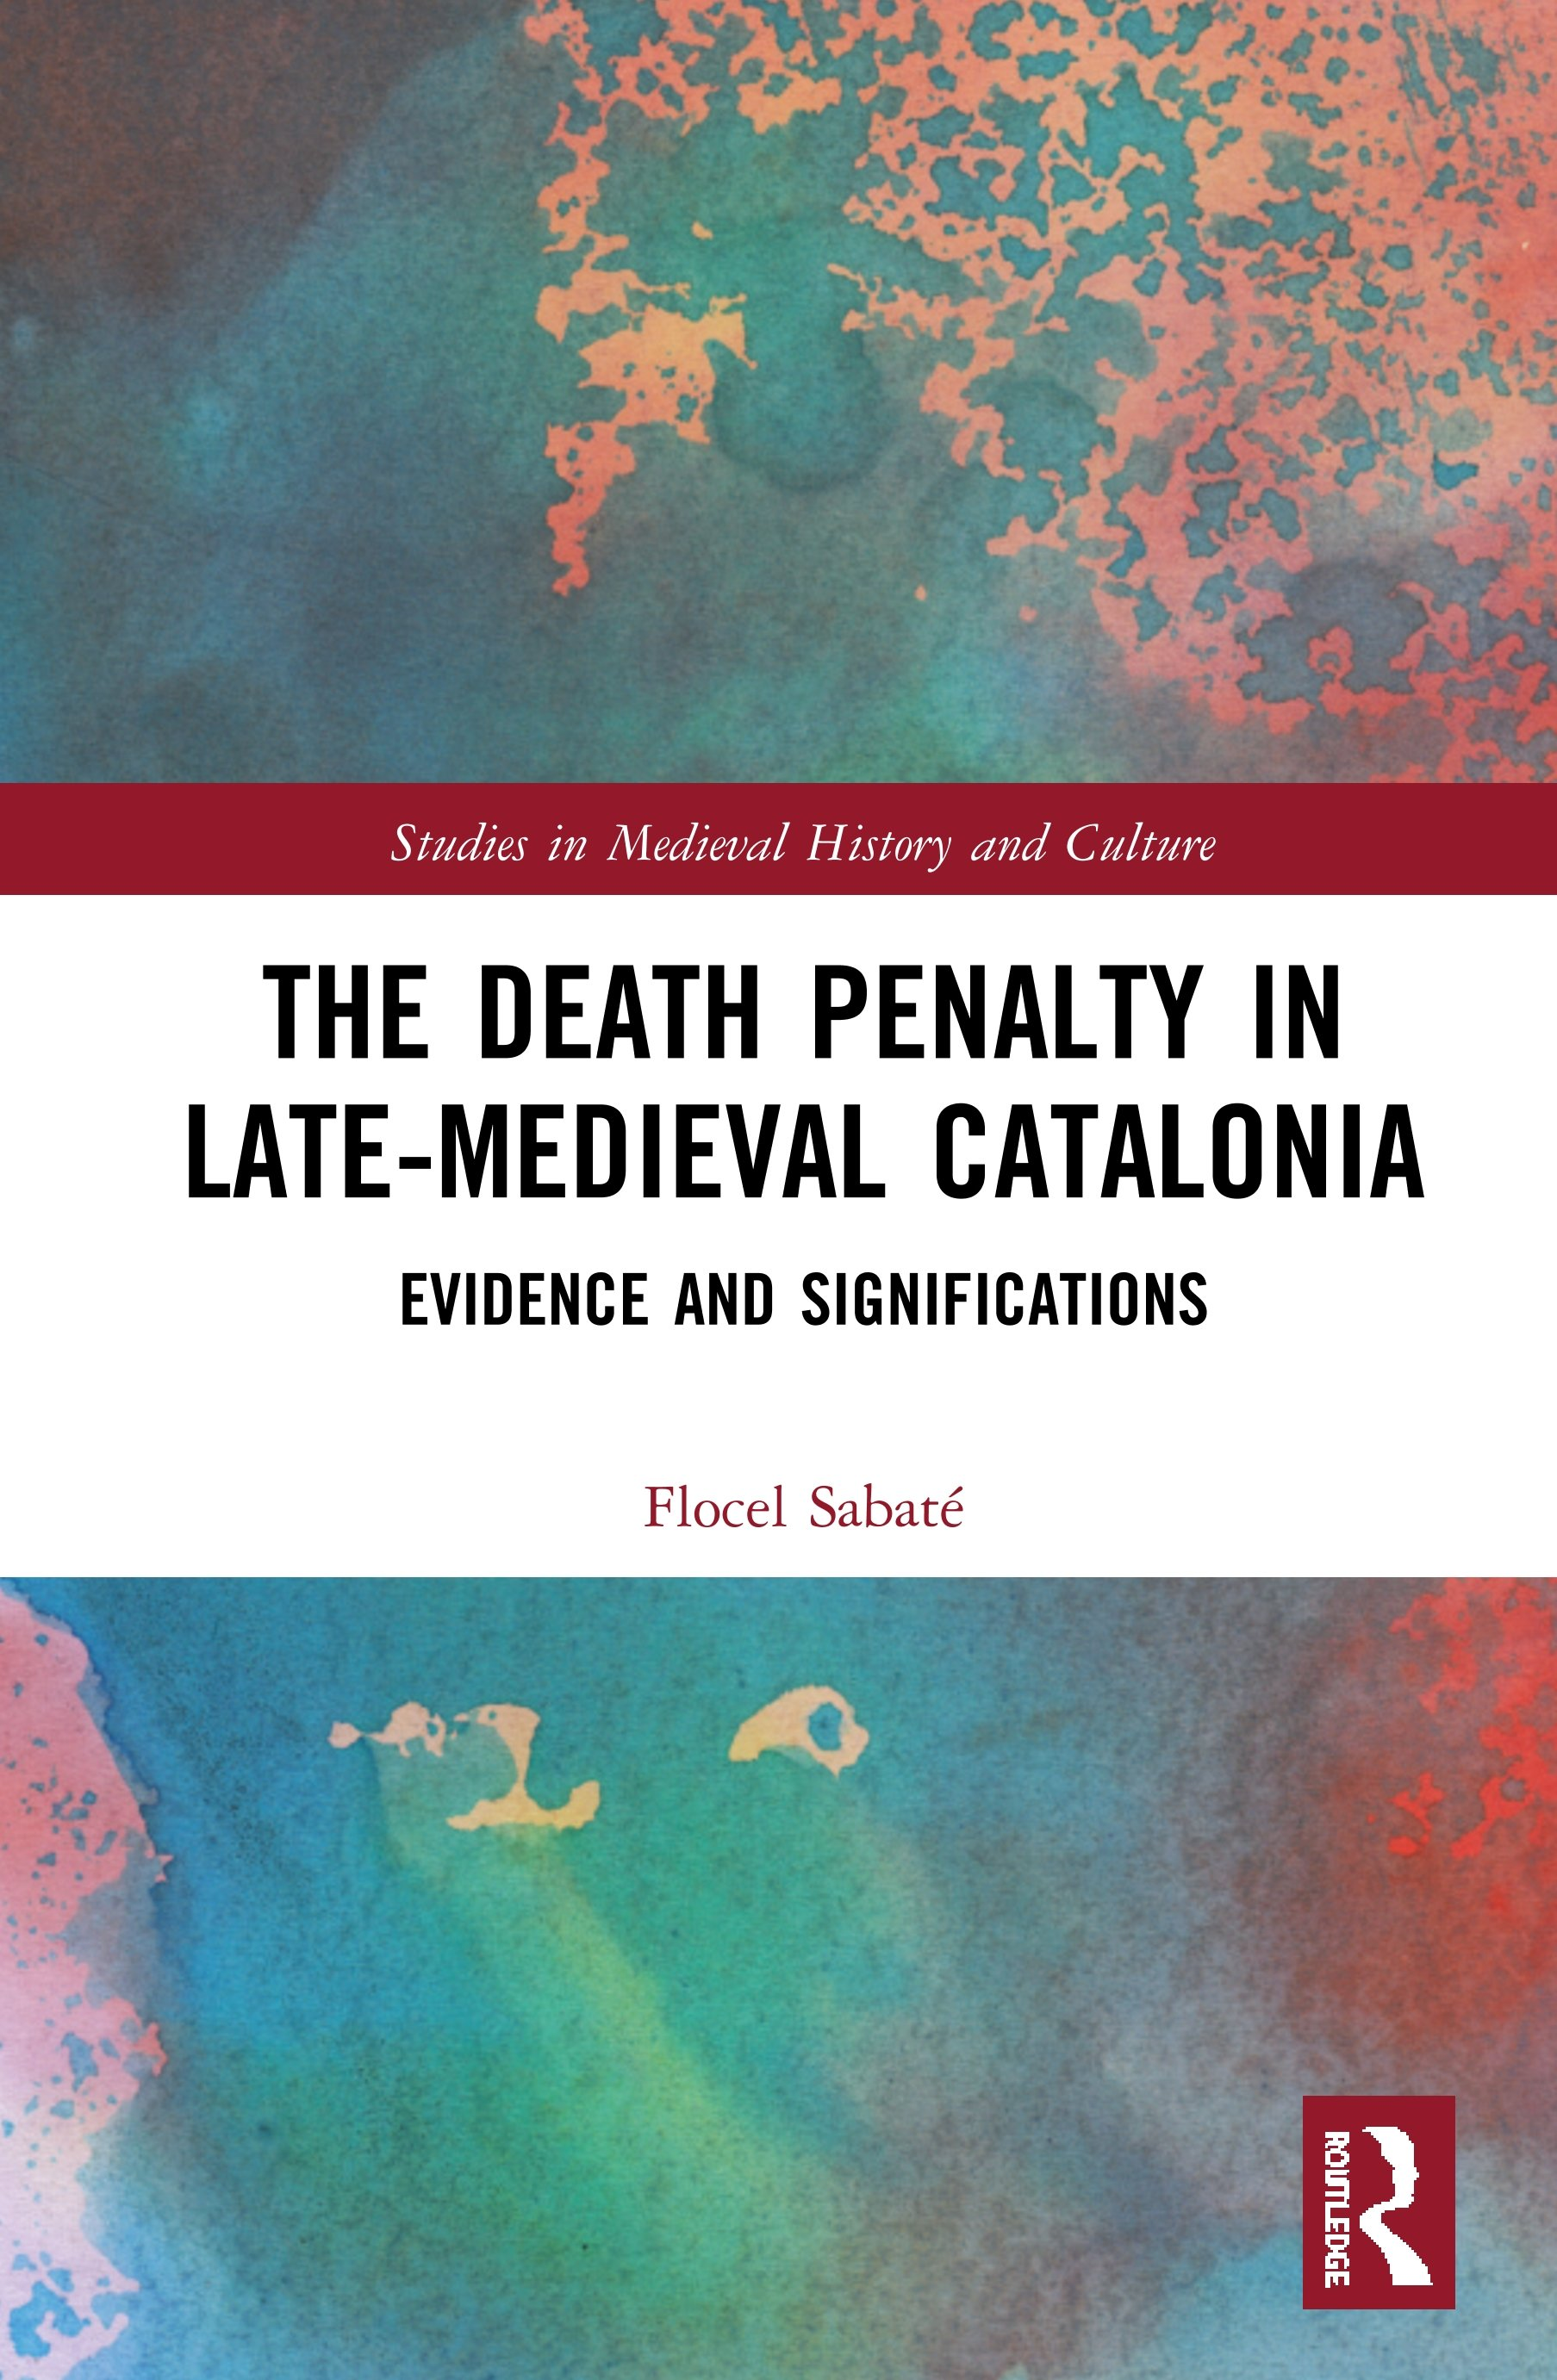 The Death Penalty in Late-Medieval Catalonia: Evidence and Significations book cover